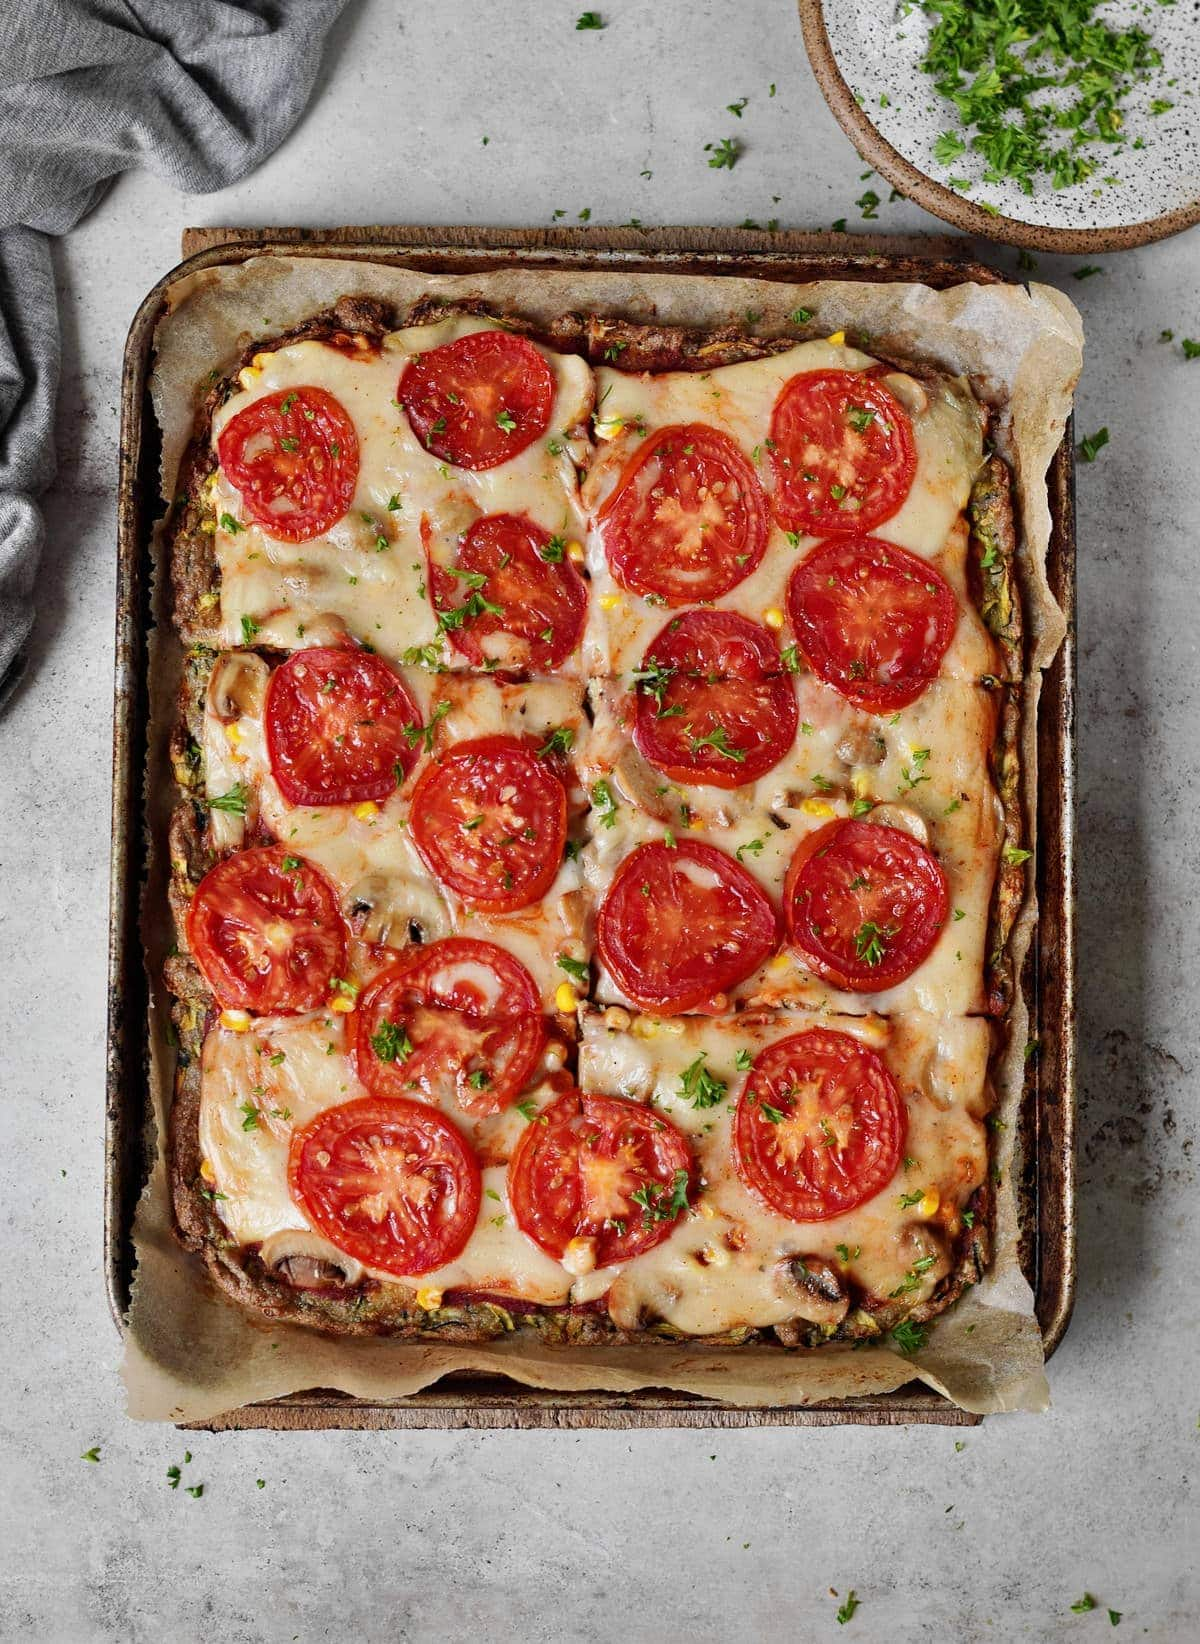 sliced rectangular gluten-free keto pizza with tomatoes and cheese